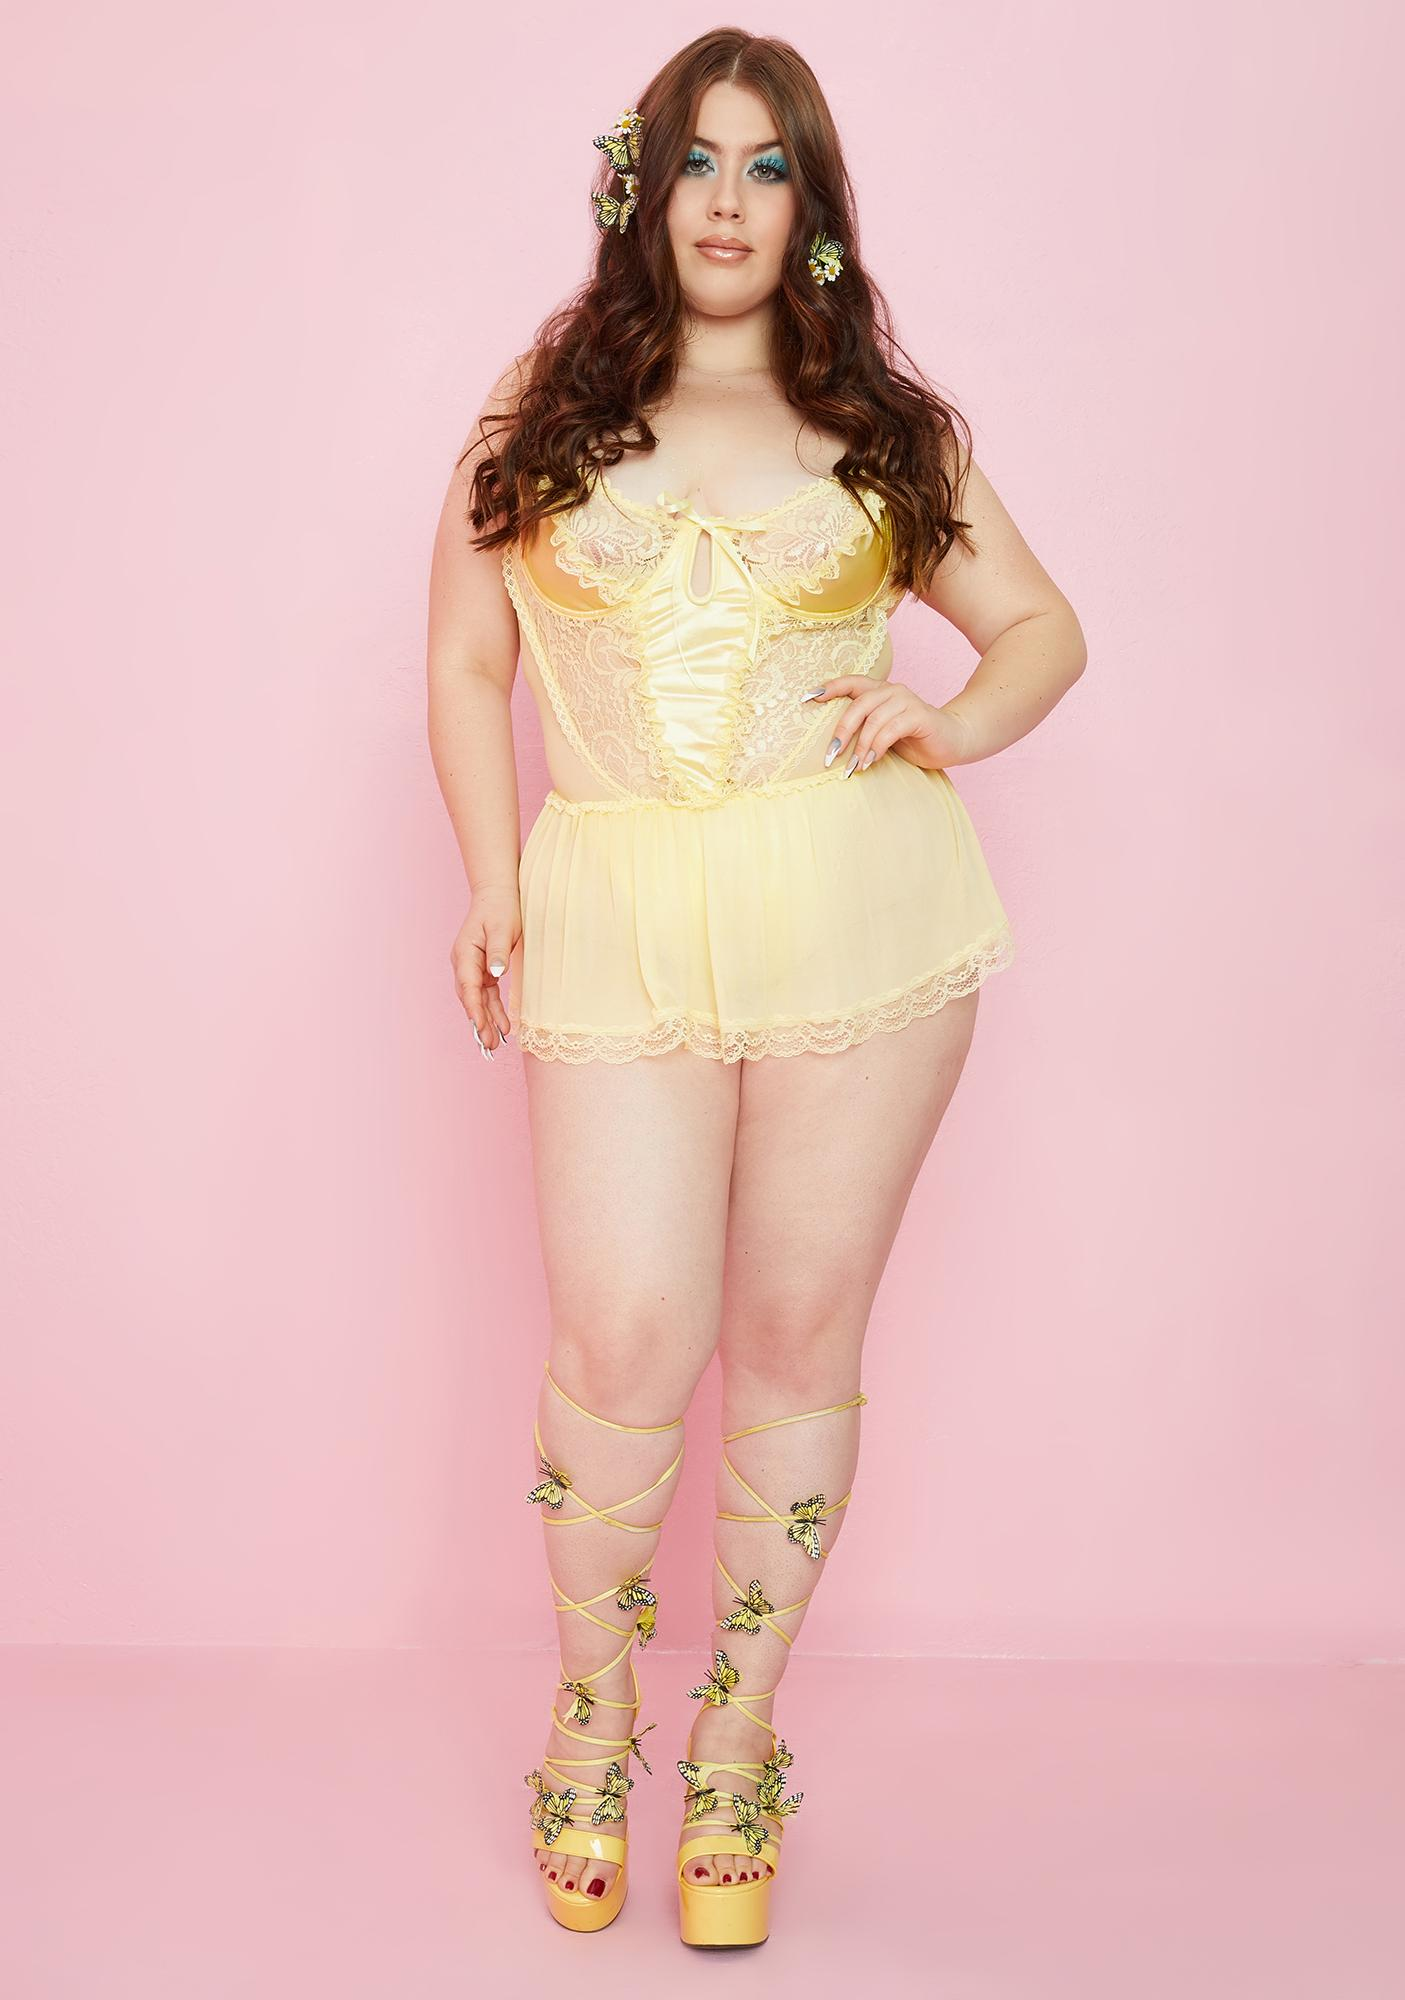 Sugar Thrillz Lux Lemon Spoiled But Not Rotten Lace Teddy